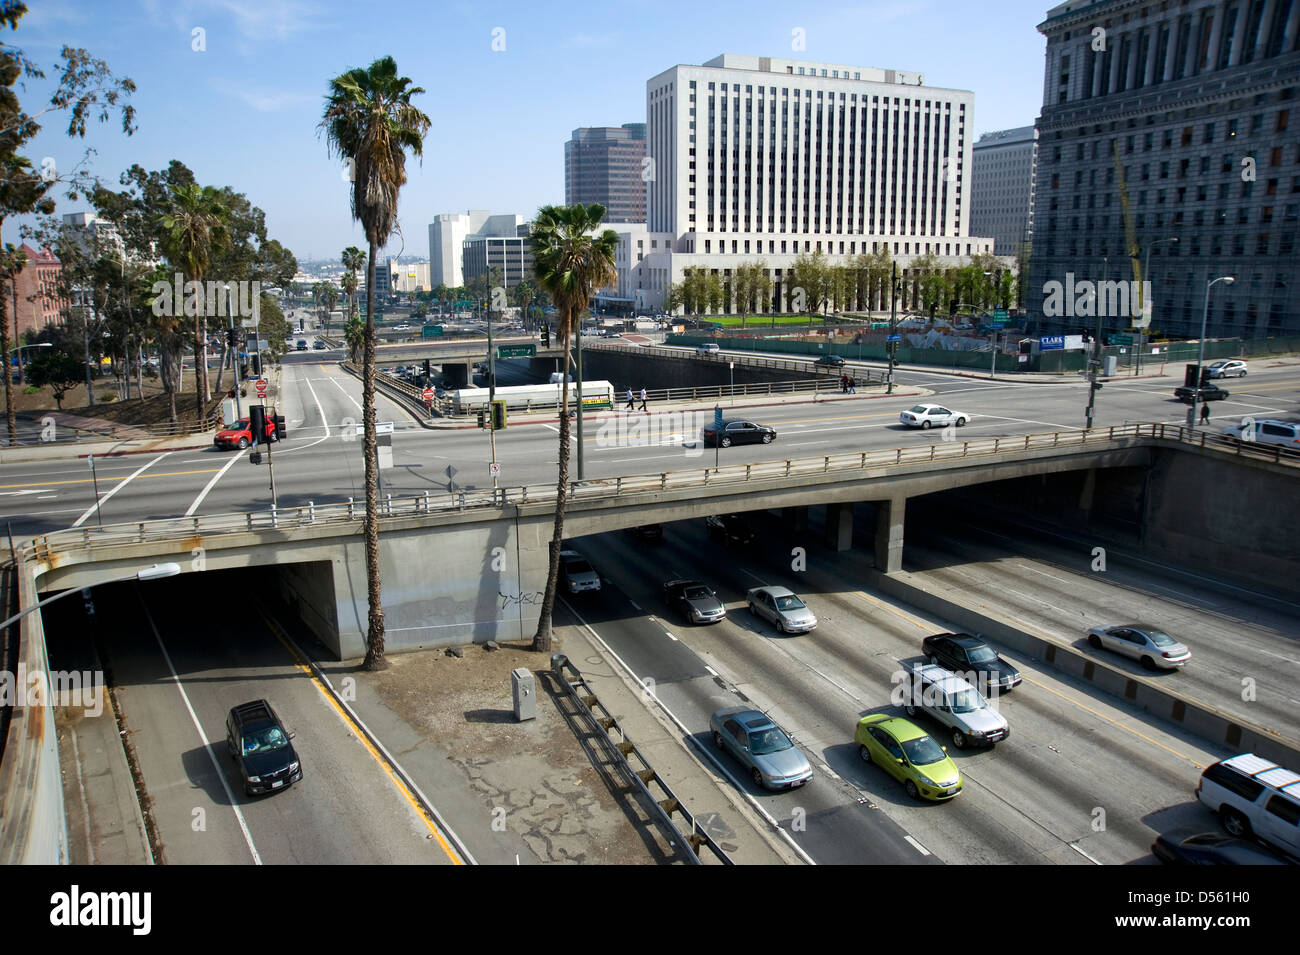 View of downtown Los Angeles with freeway and overpasses - Stock Image